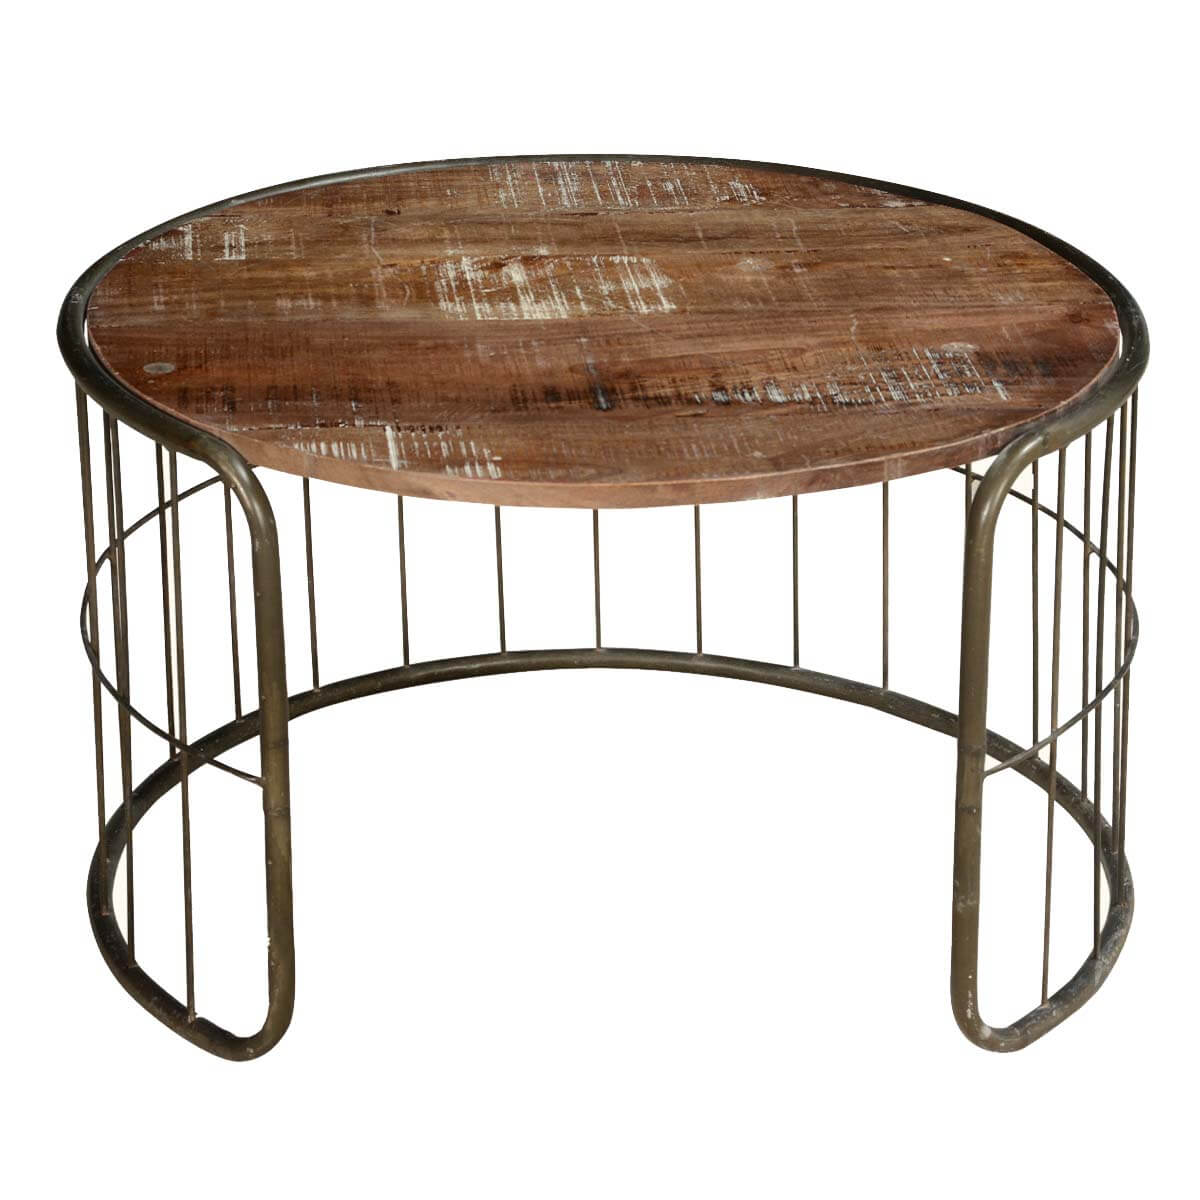 On the fence mango wood iron rustic 30 round coffee table Round rustic coffee table